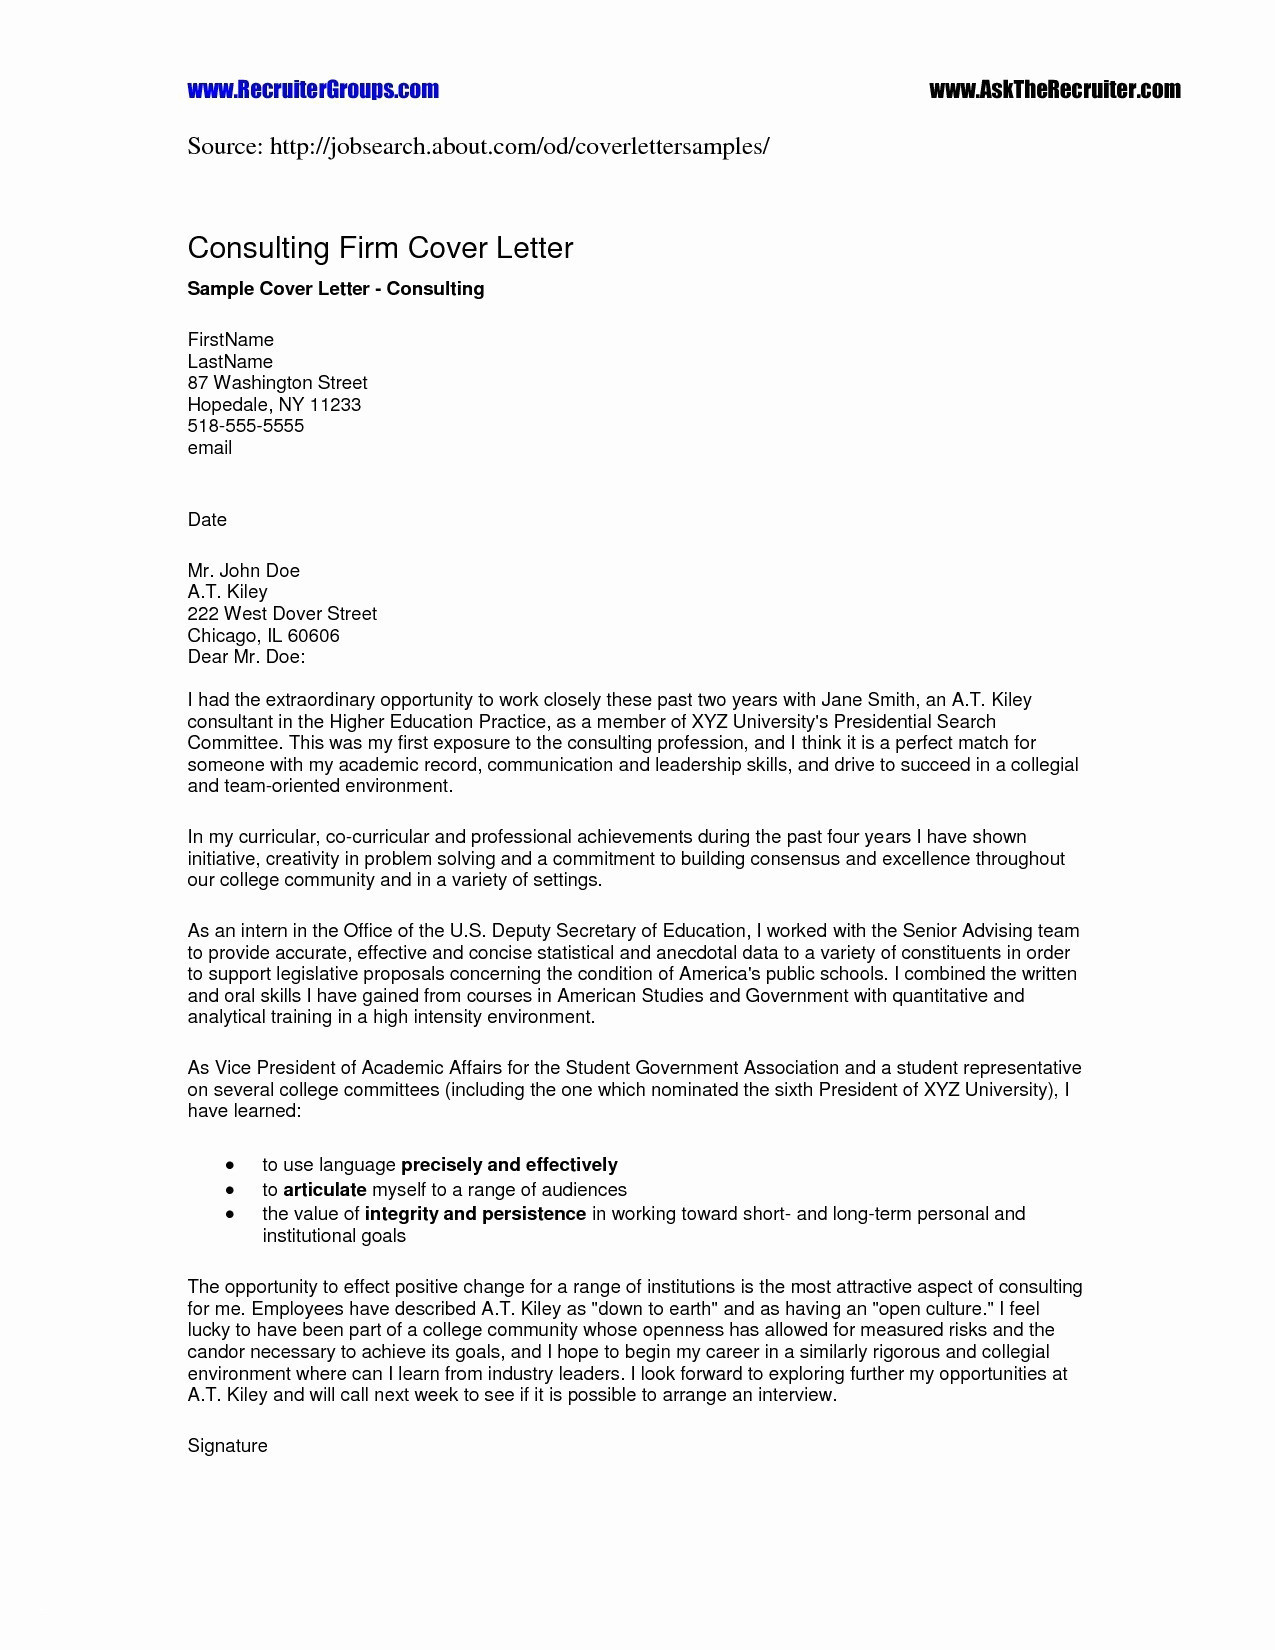 uchicago resume template Collection-T Cover Letter Template Cv Templates Chicago Resume Template Updated First Resume Template Best Cover 1-m